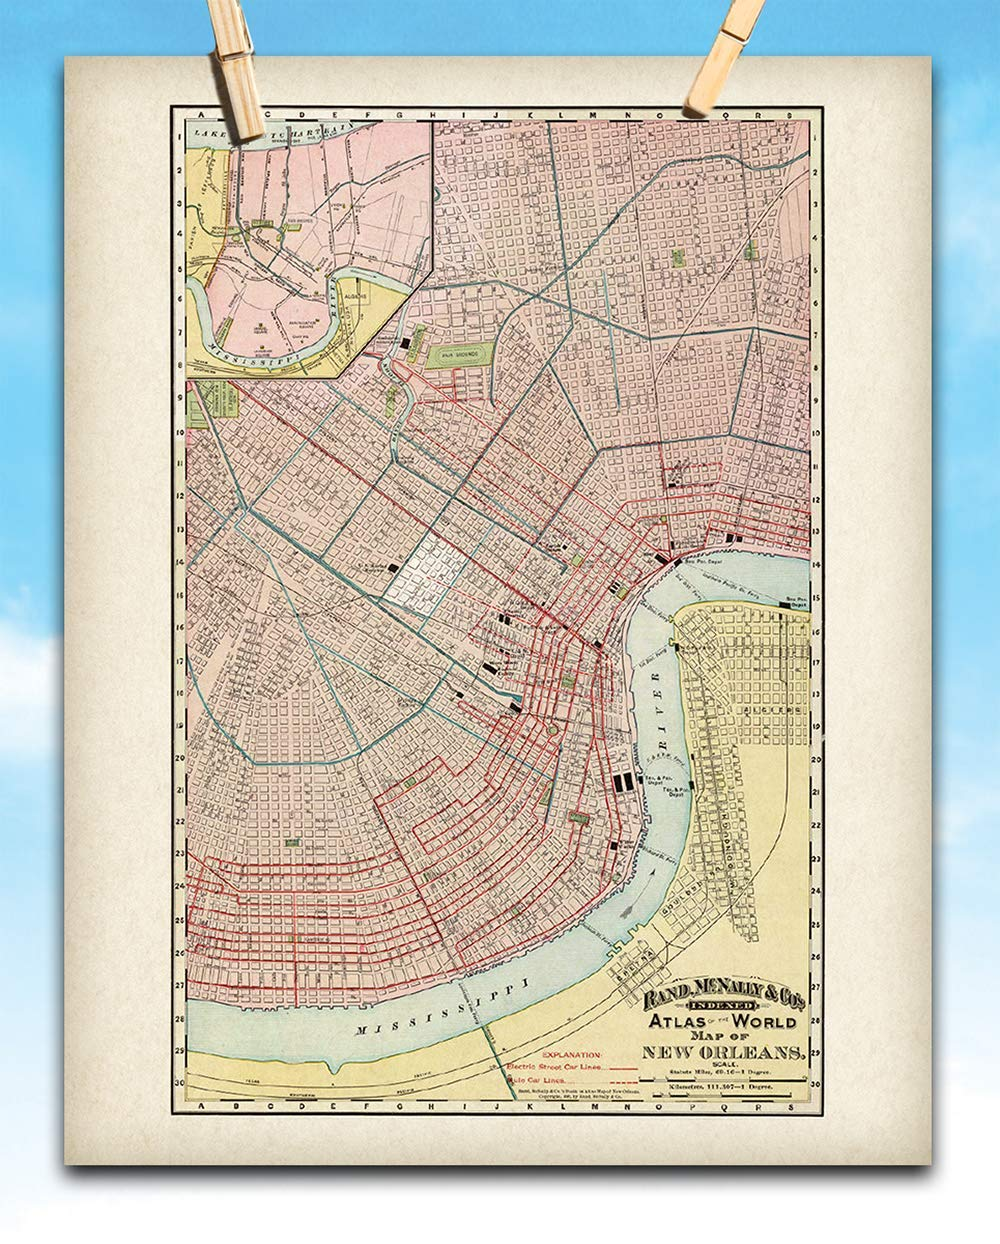 picture regarding Printable Maps of New Orleans called : Fresh Orleans Map - 11x14 Unframed Artwork Print